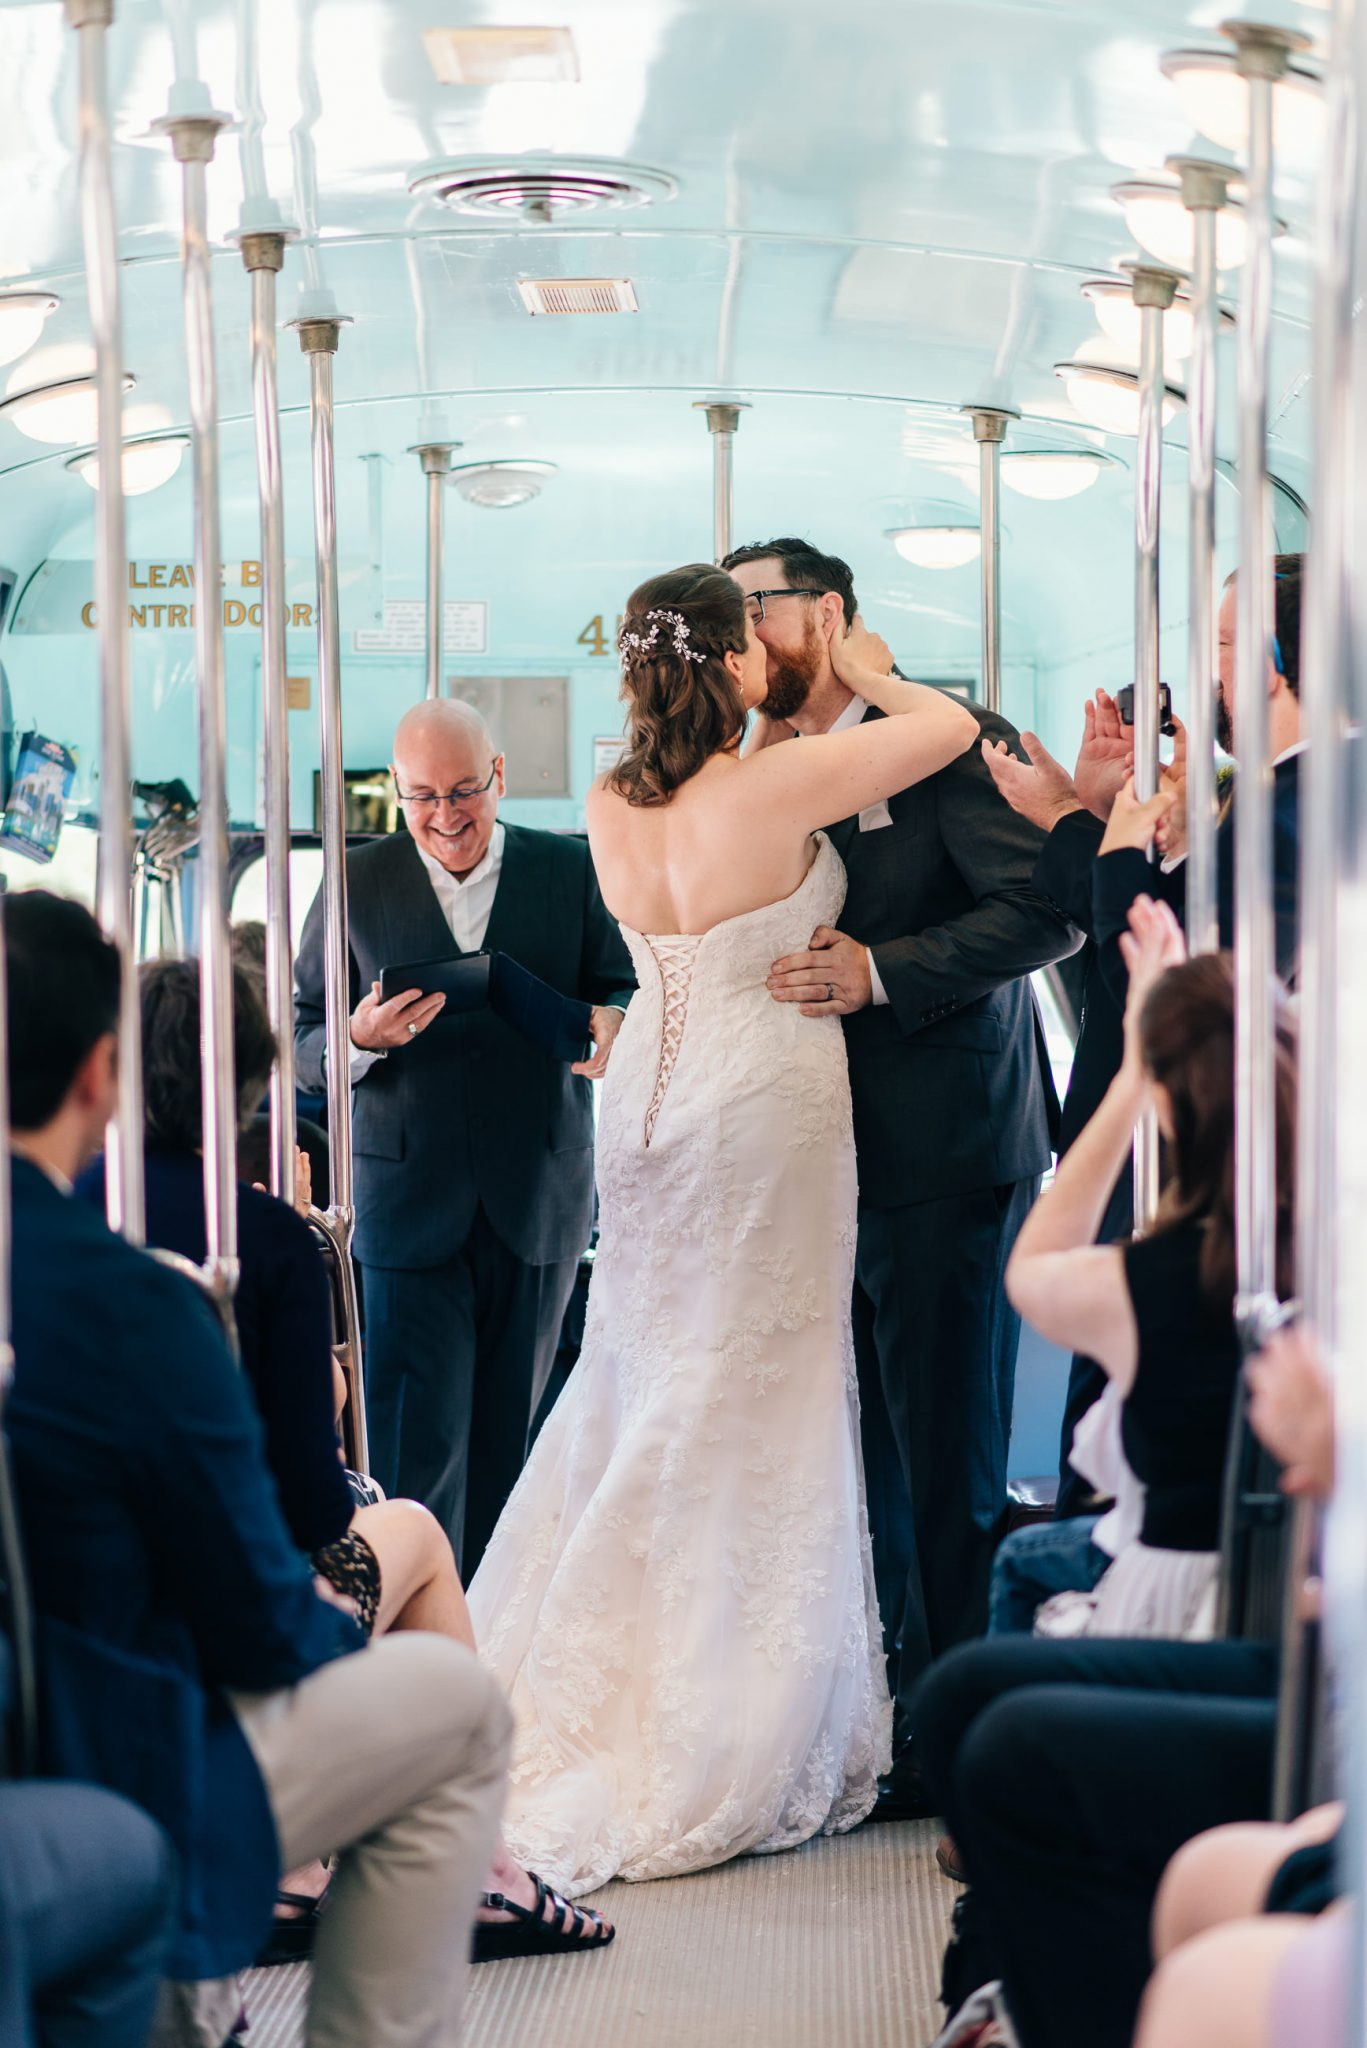 The bride and groom kiss at the end of their Vintage Toronto Streetcar Wedding Ceremony